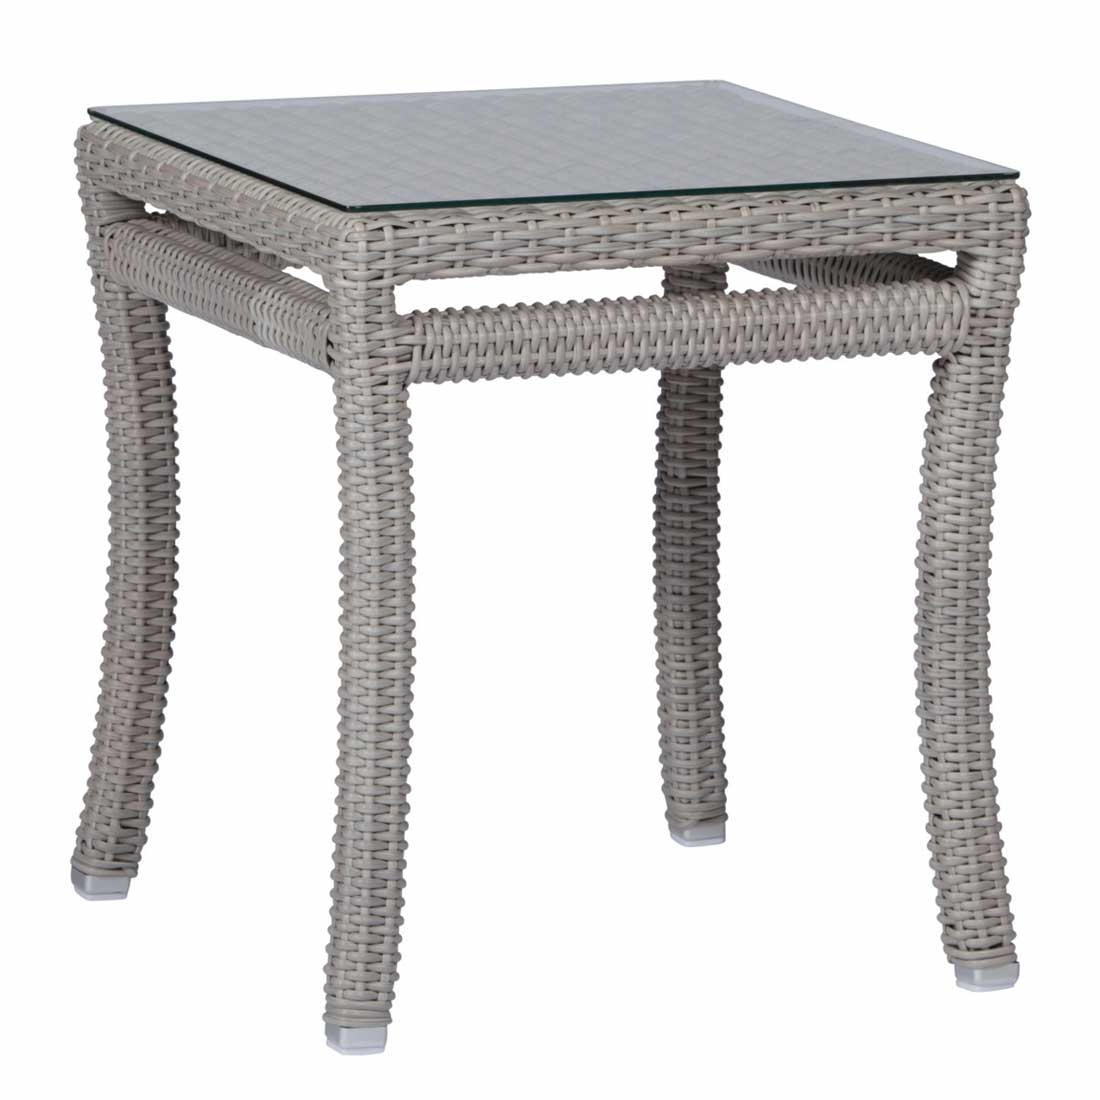 Club Woven Wicker Outdoor End Table